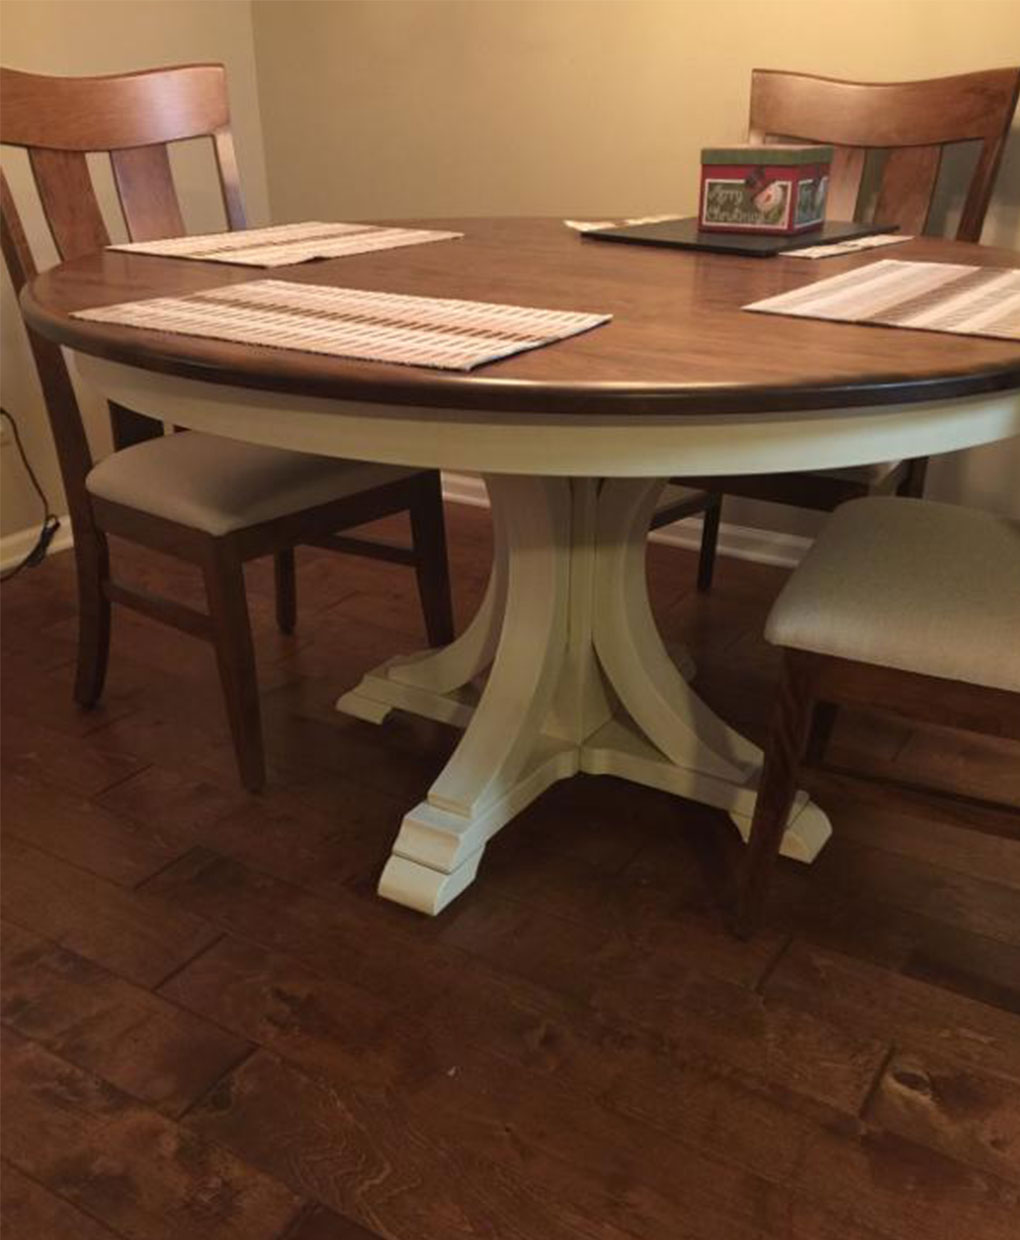 Buckeye pedestal table amish direct furniture for Pedestal dining table and chairs